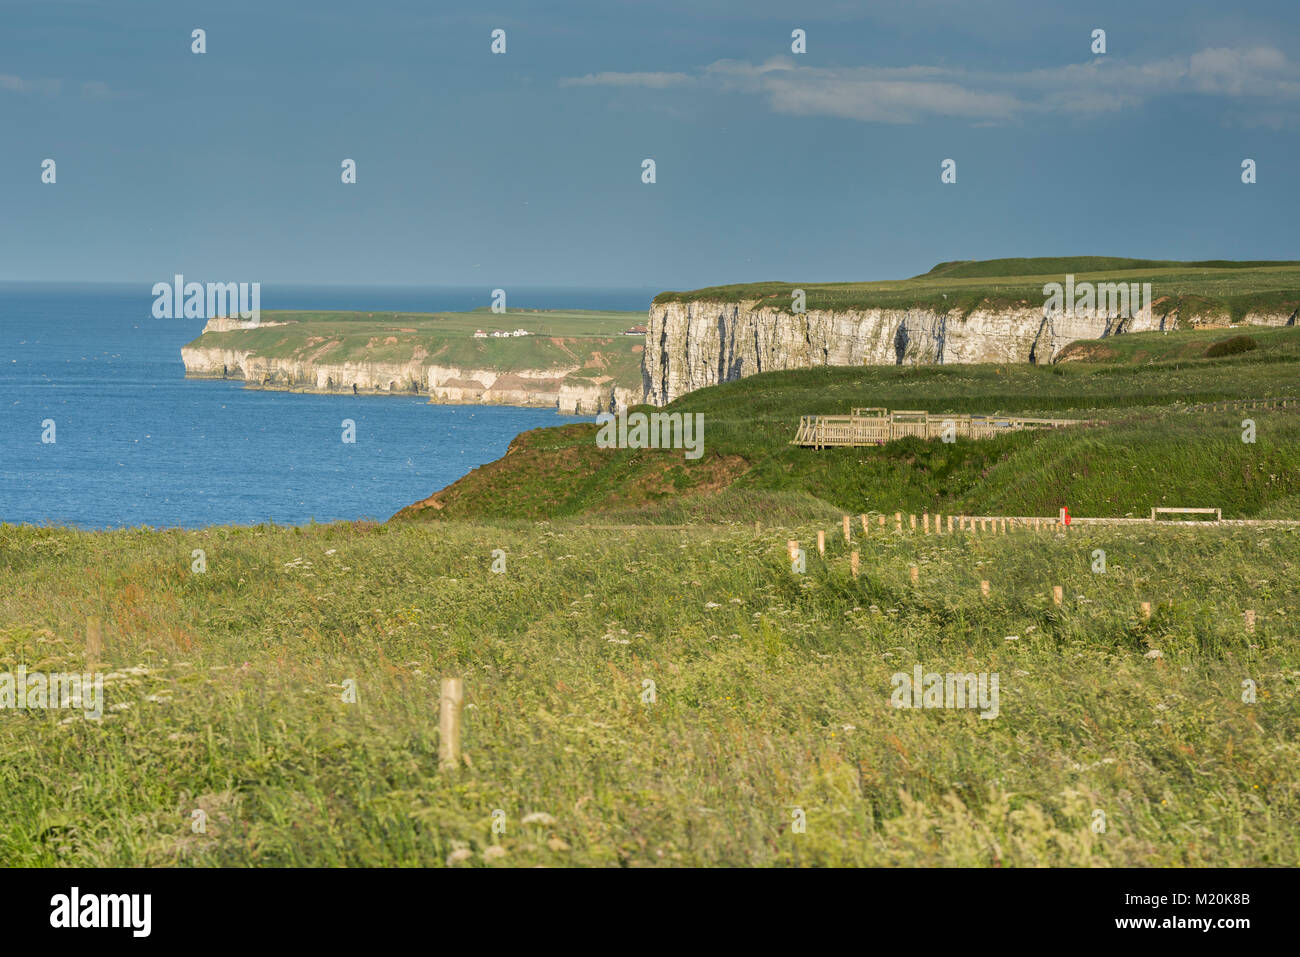 Scenic cliff-top coastal view from Bempton Cliffs RSPB reserve, of blue sky, North Sea & towering chalk headlands - Stock Image